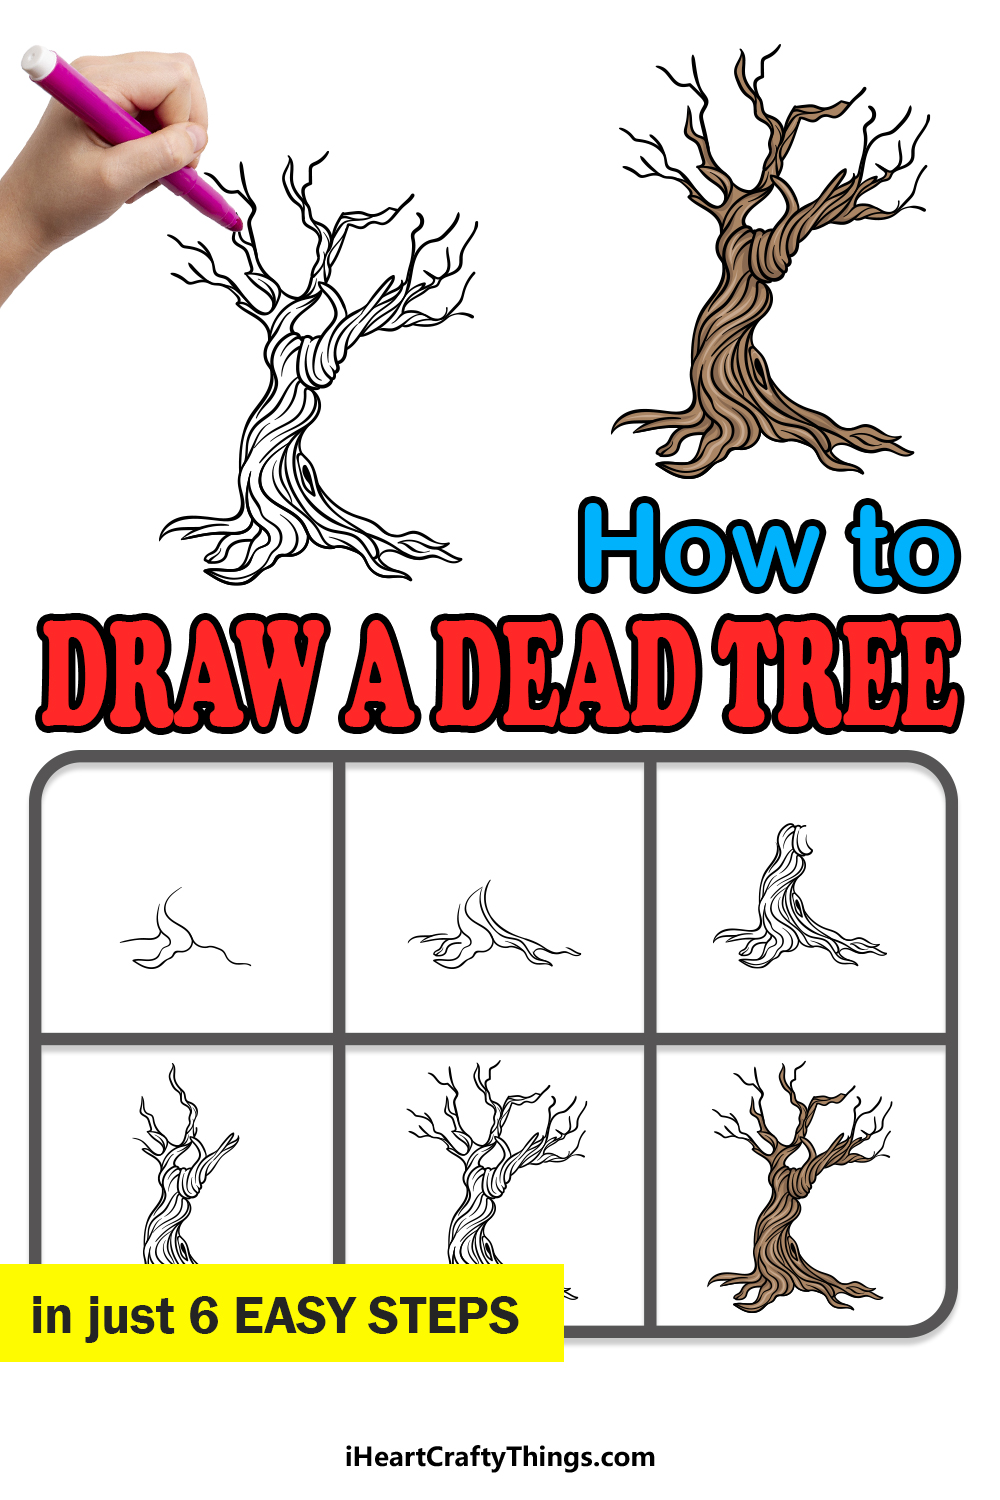 how to draw a dead tree in 6 easy steps